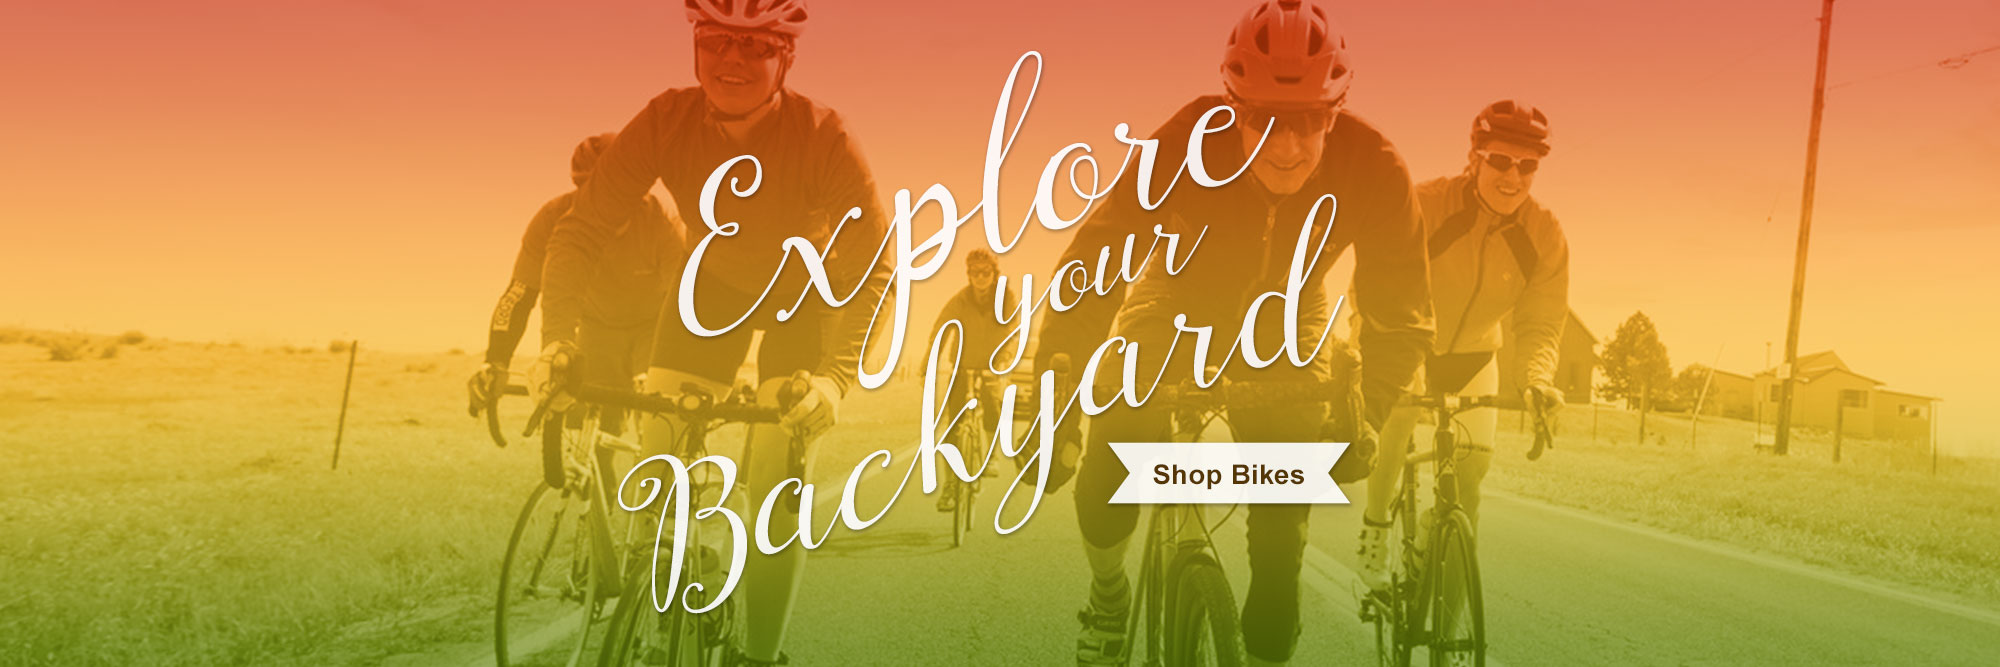 Shop our wide selection of bikes